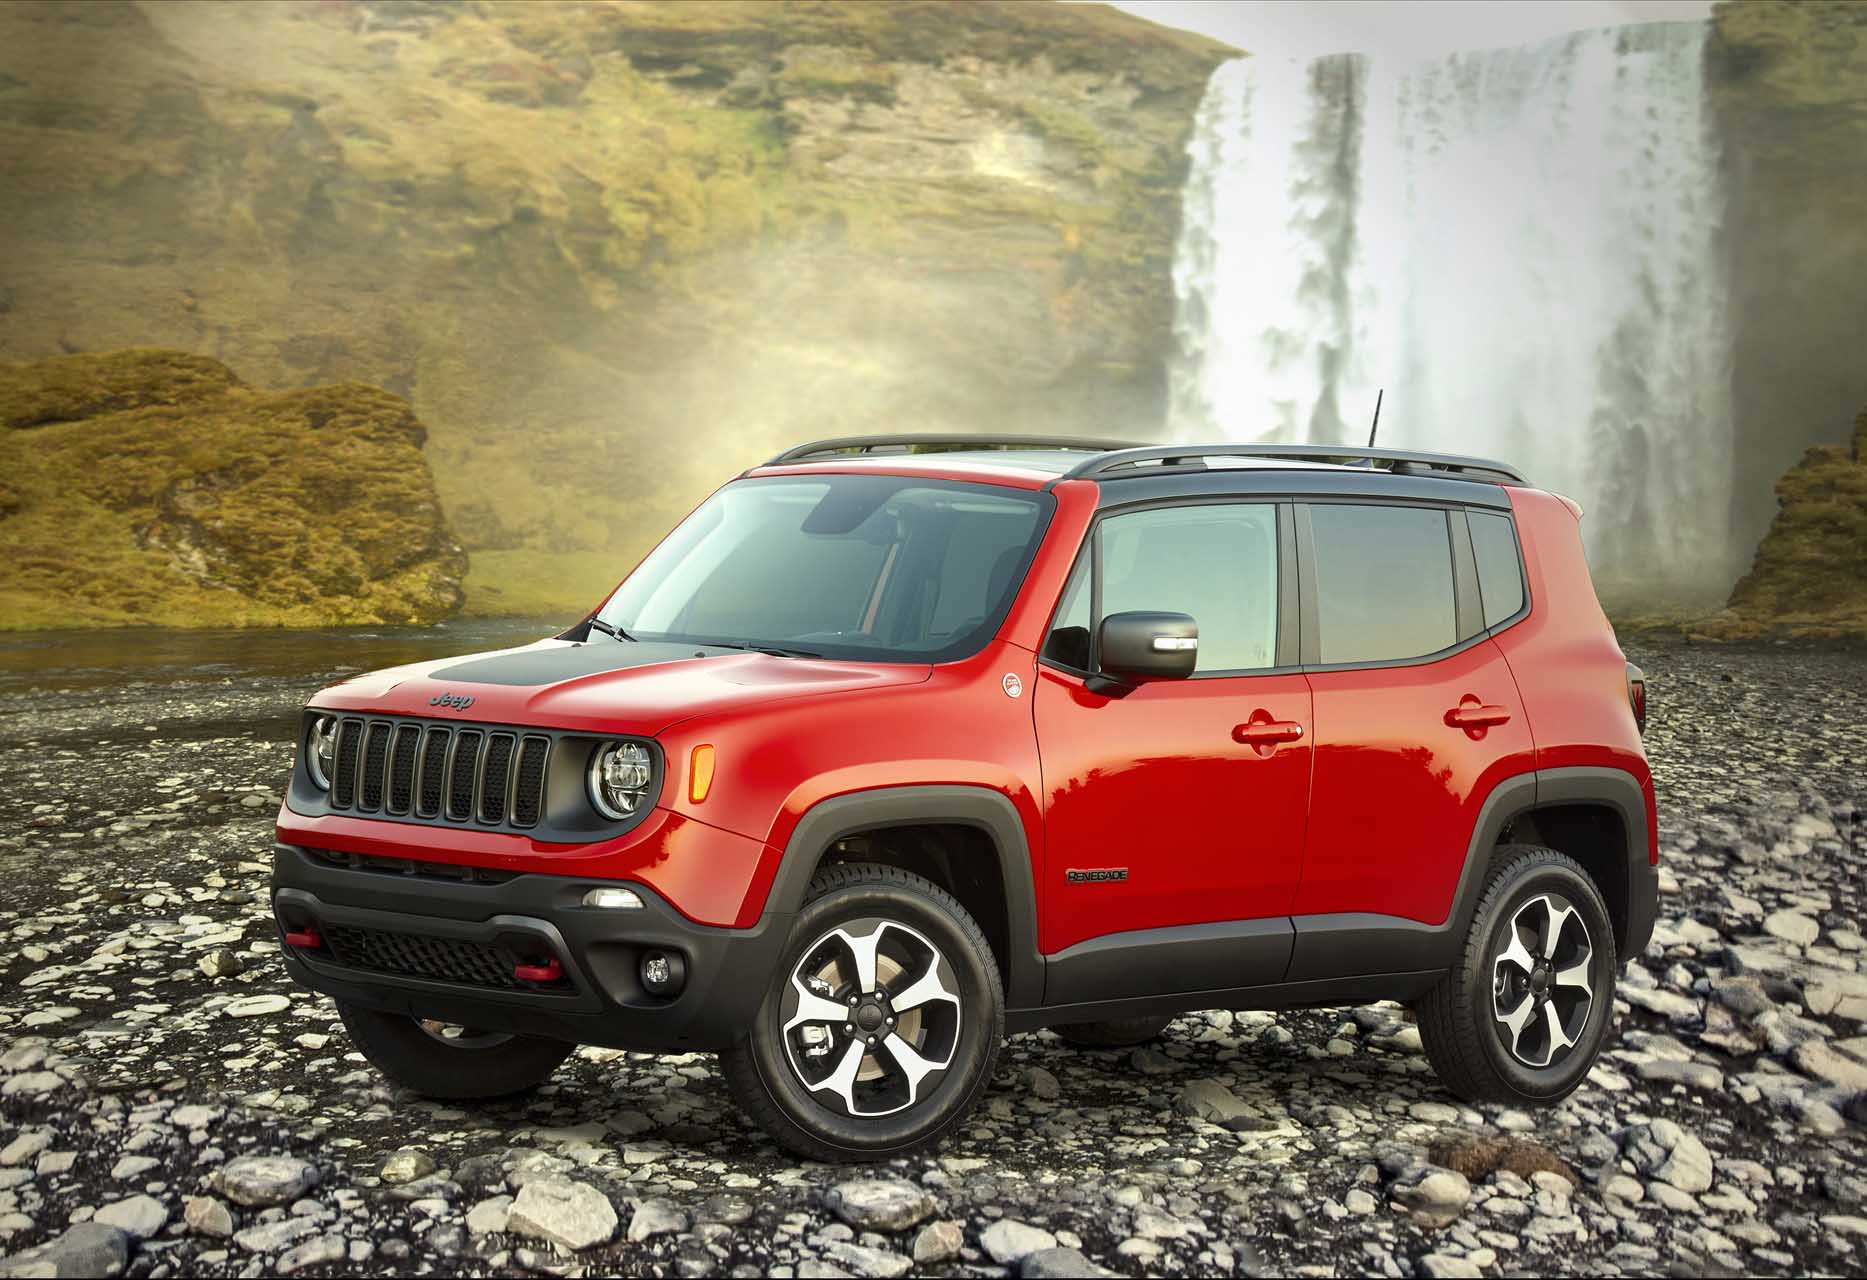 2021 Jeep Renegade Release